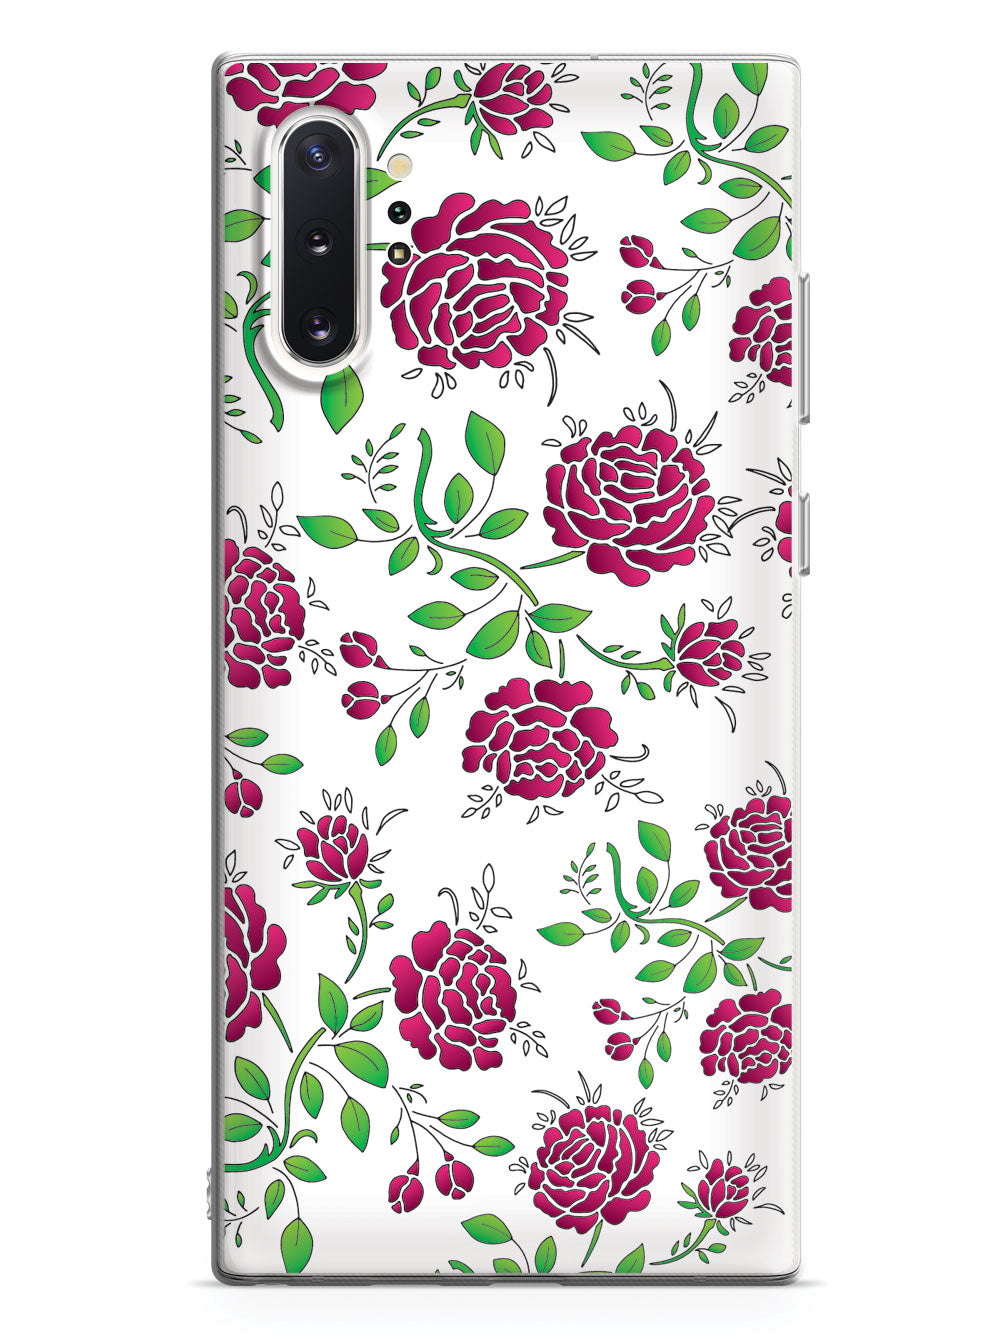 Flower Pattern Two Case